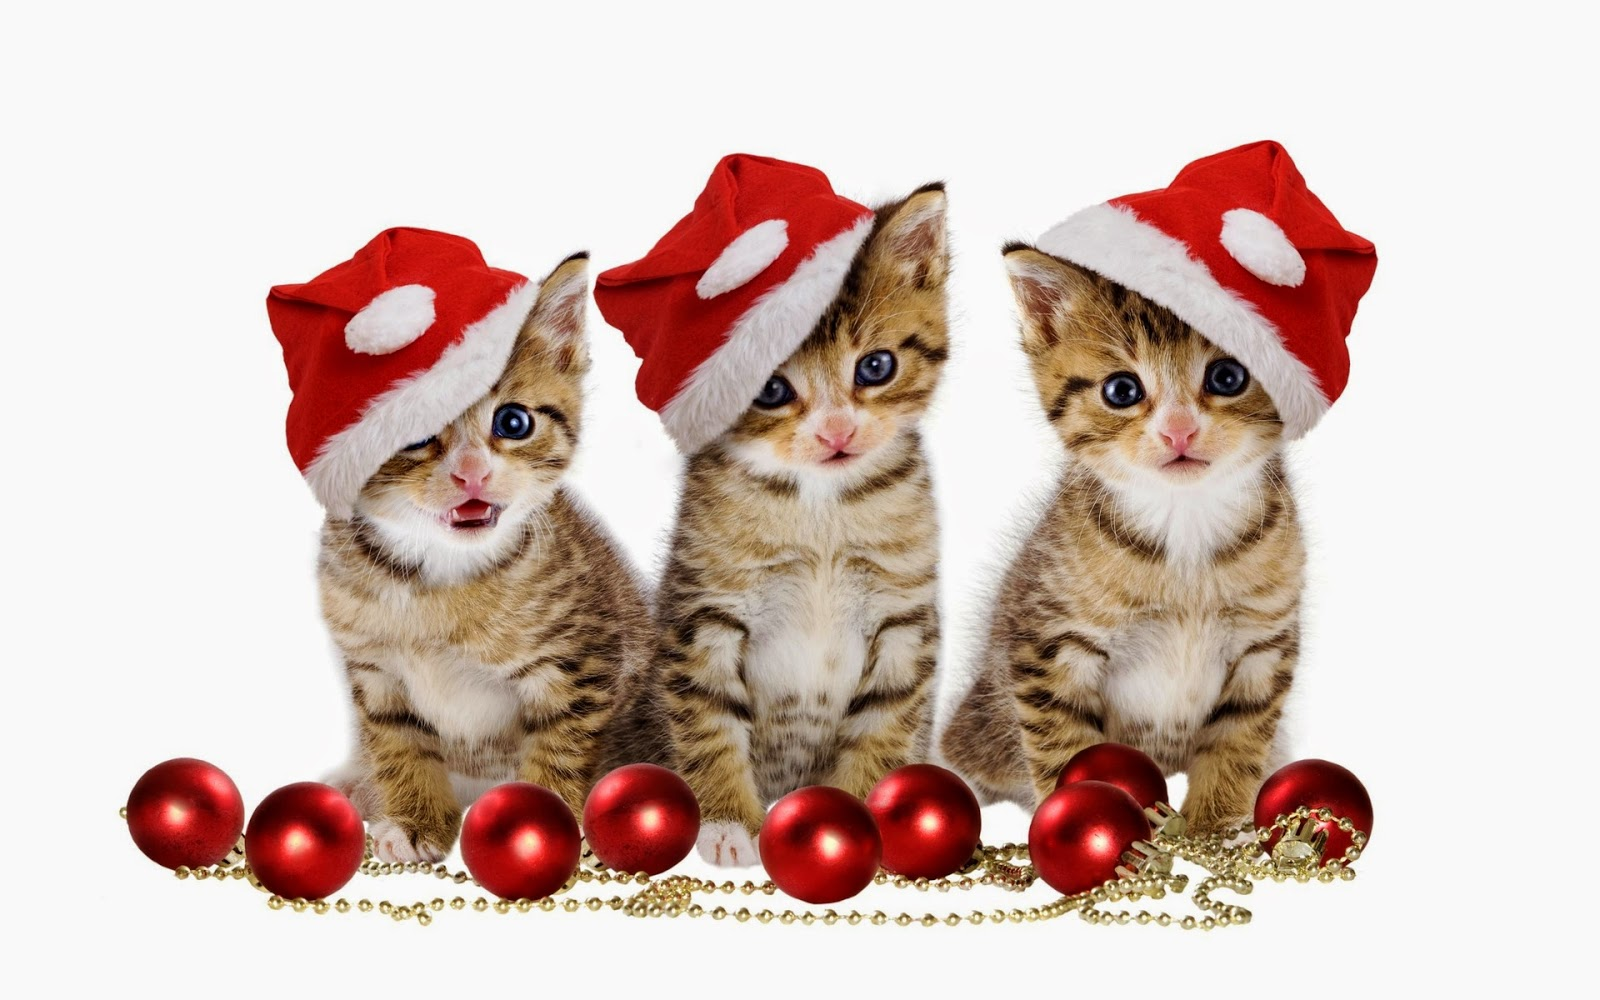 Christmas Kitten Wallpaper  WallpaperSafari